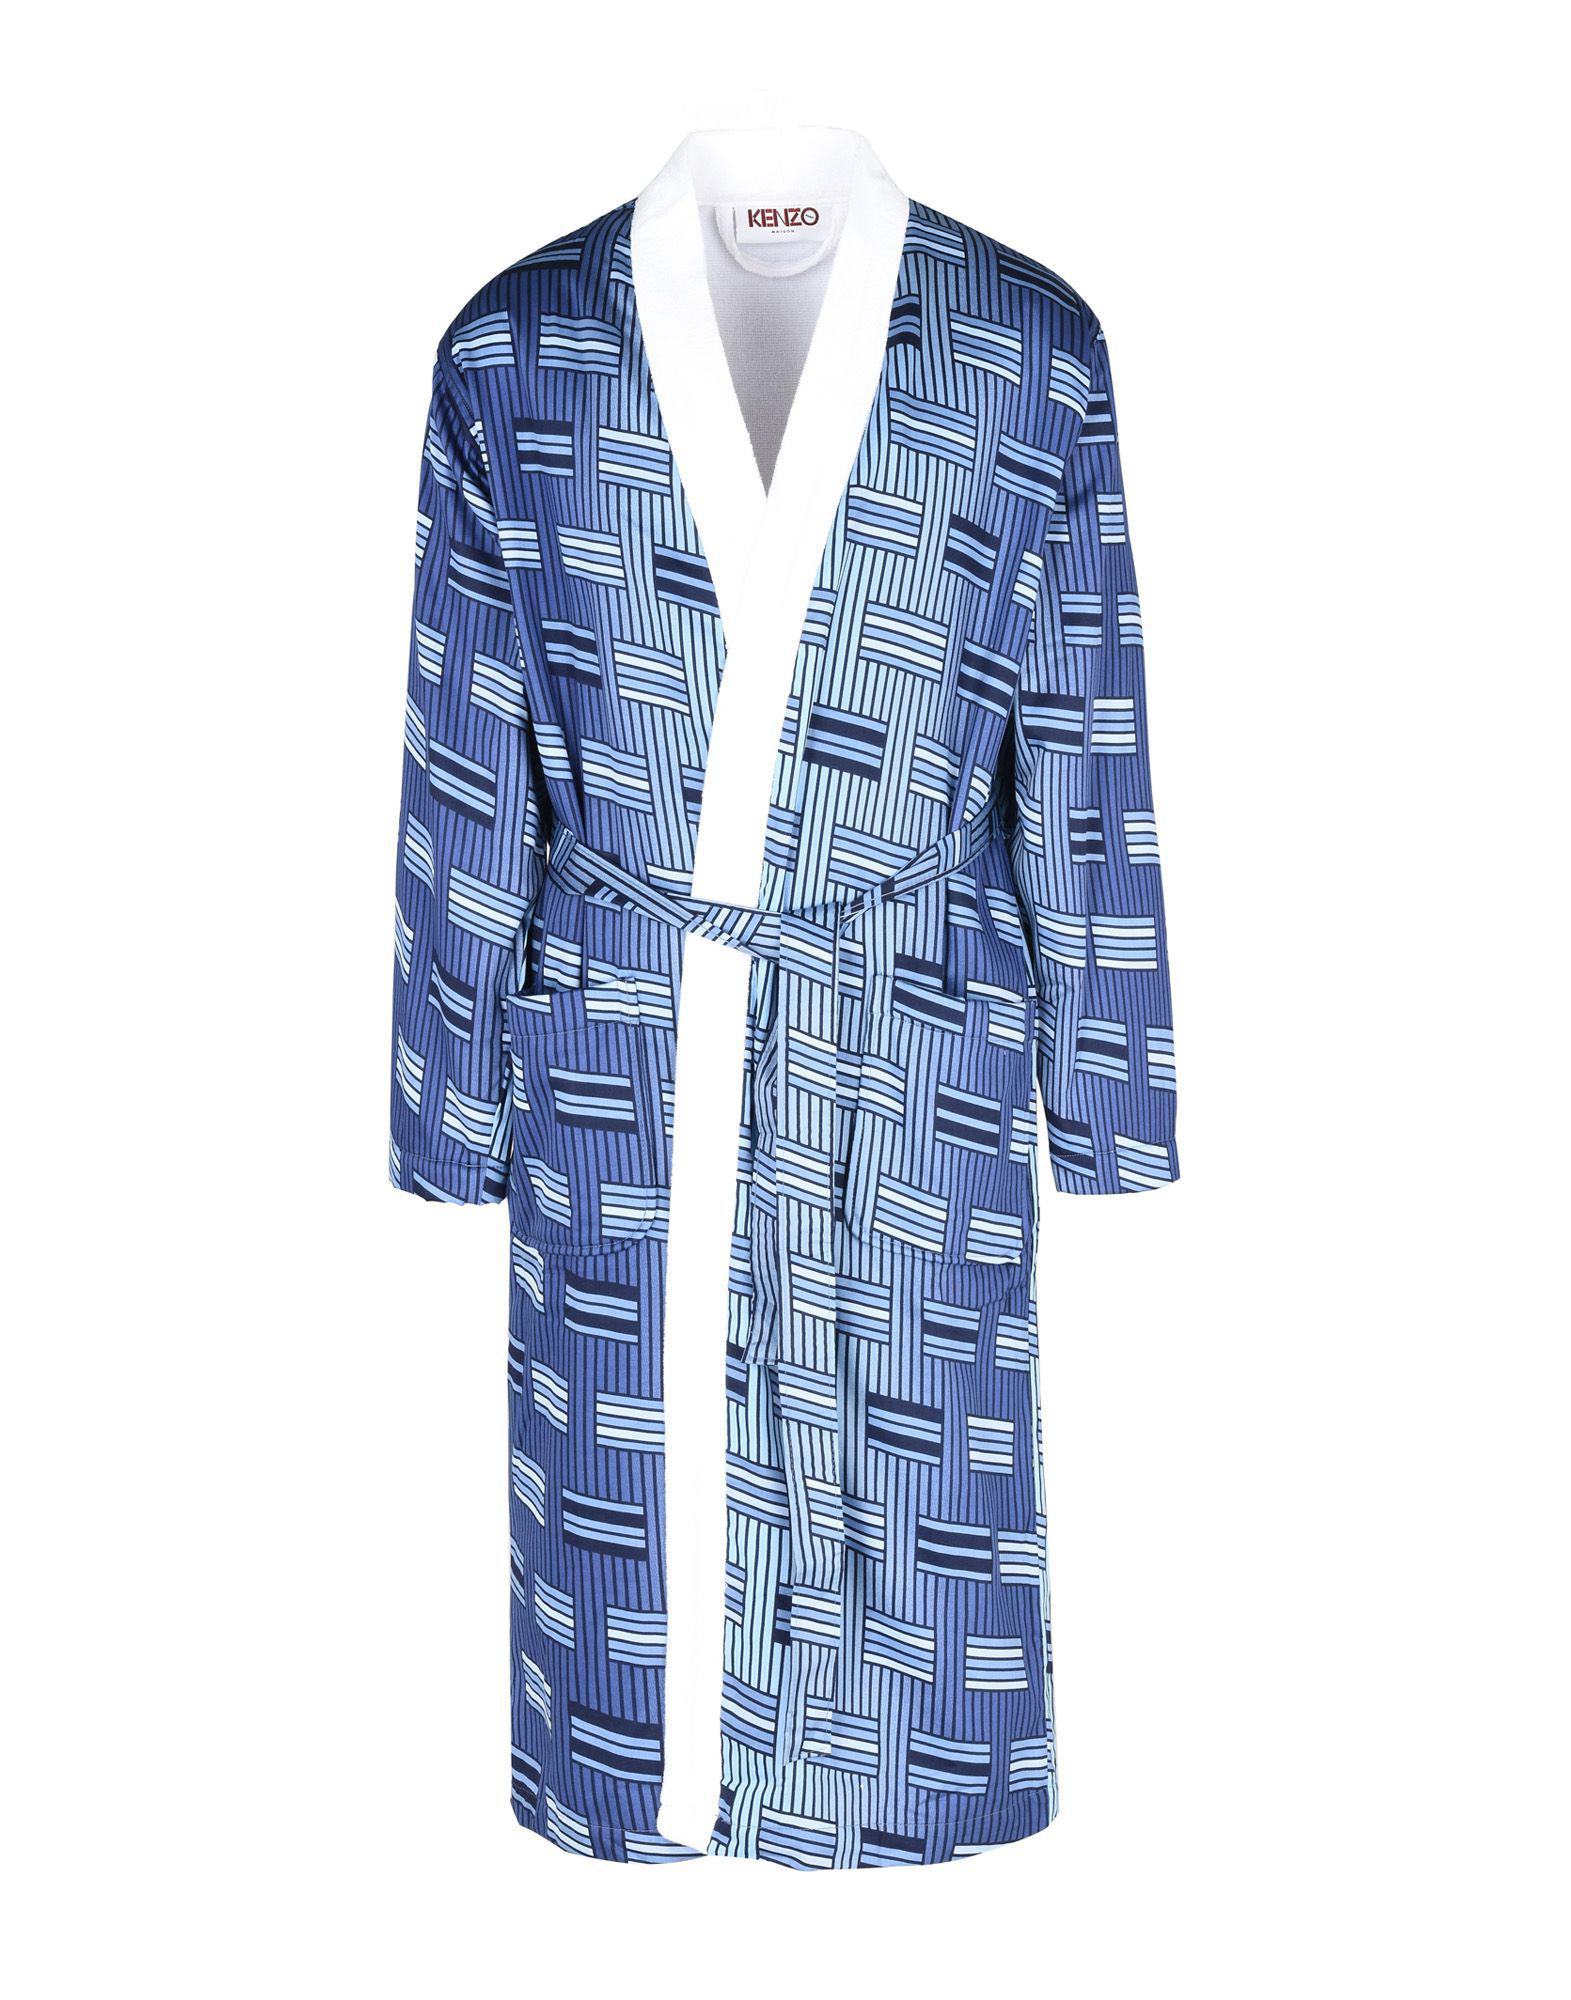 ... Bathrobe for Men - Lyst. View fullscreen 5a9328244